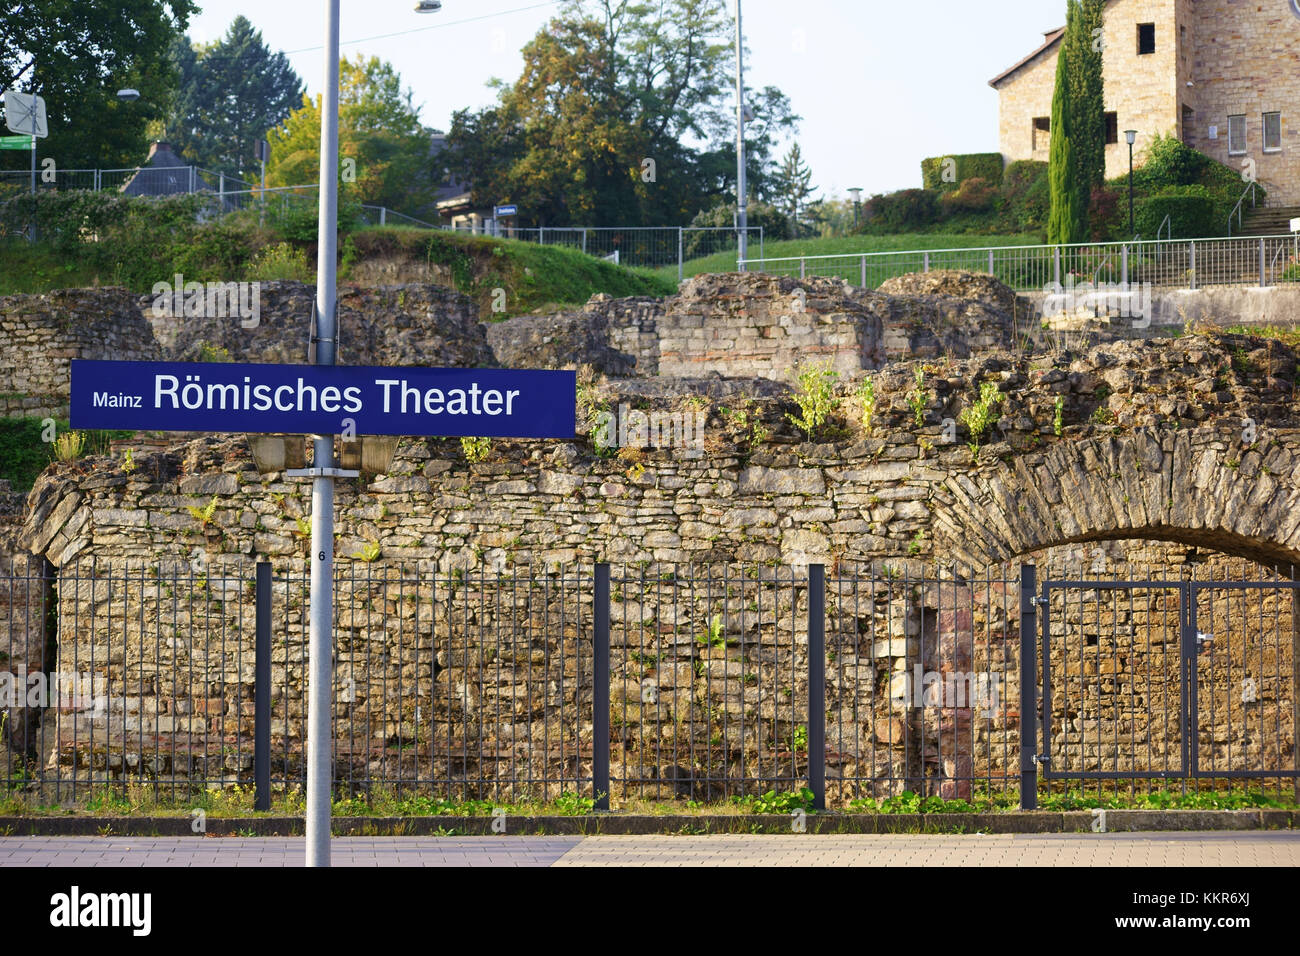 old excavated Roman buildings and complexes in the railway station 'Römisches Theater Mainz', - Stock Image